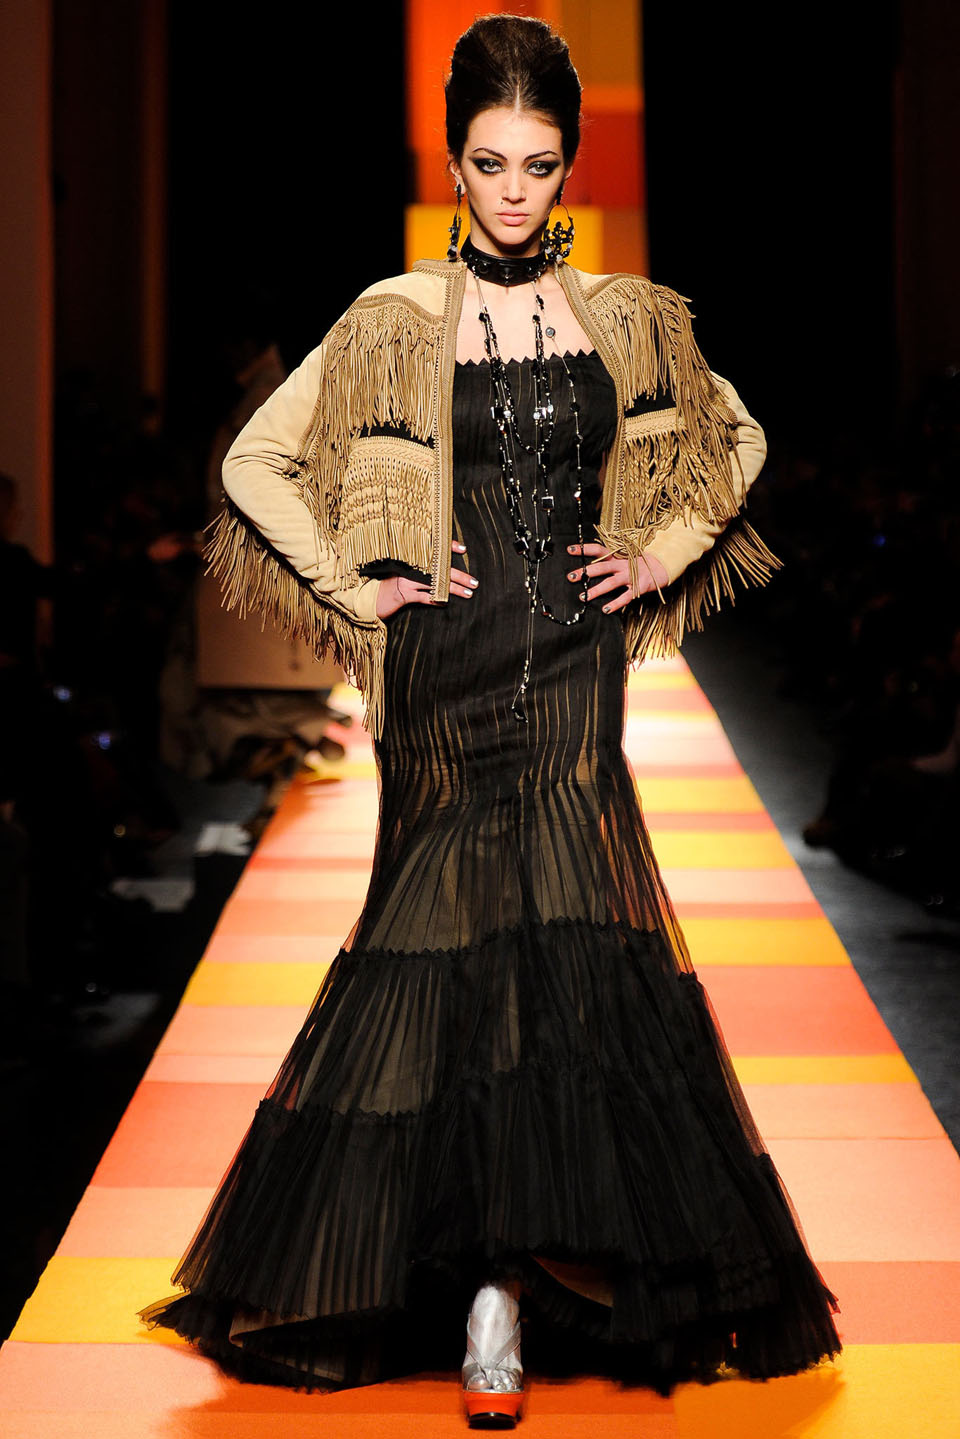 Jean Paul Gaultier Spring - Summer 2013, Haute Couture collection.11